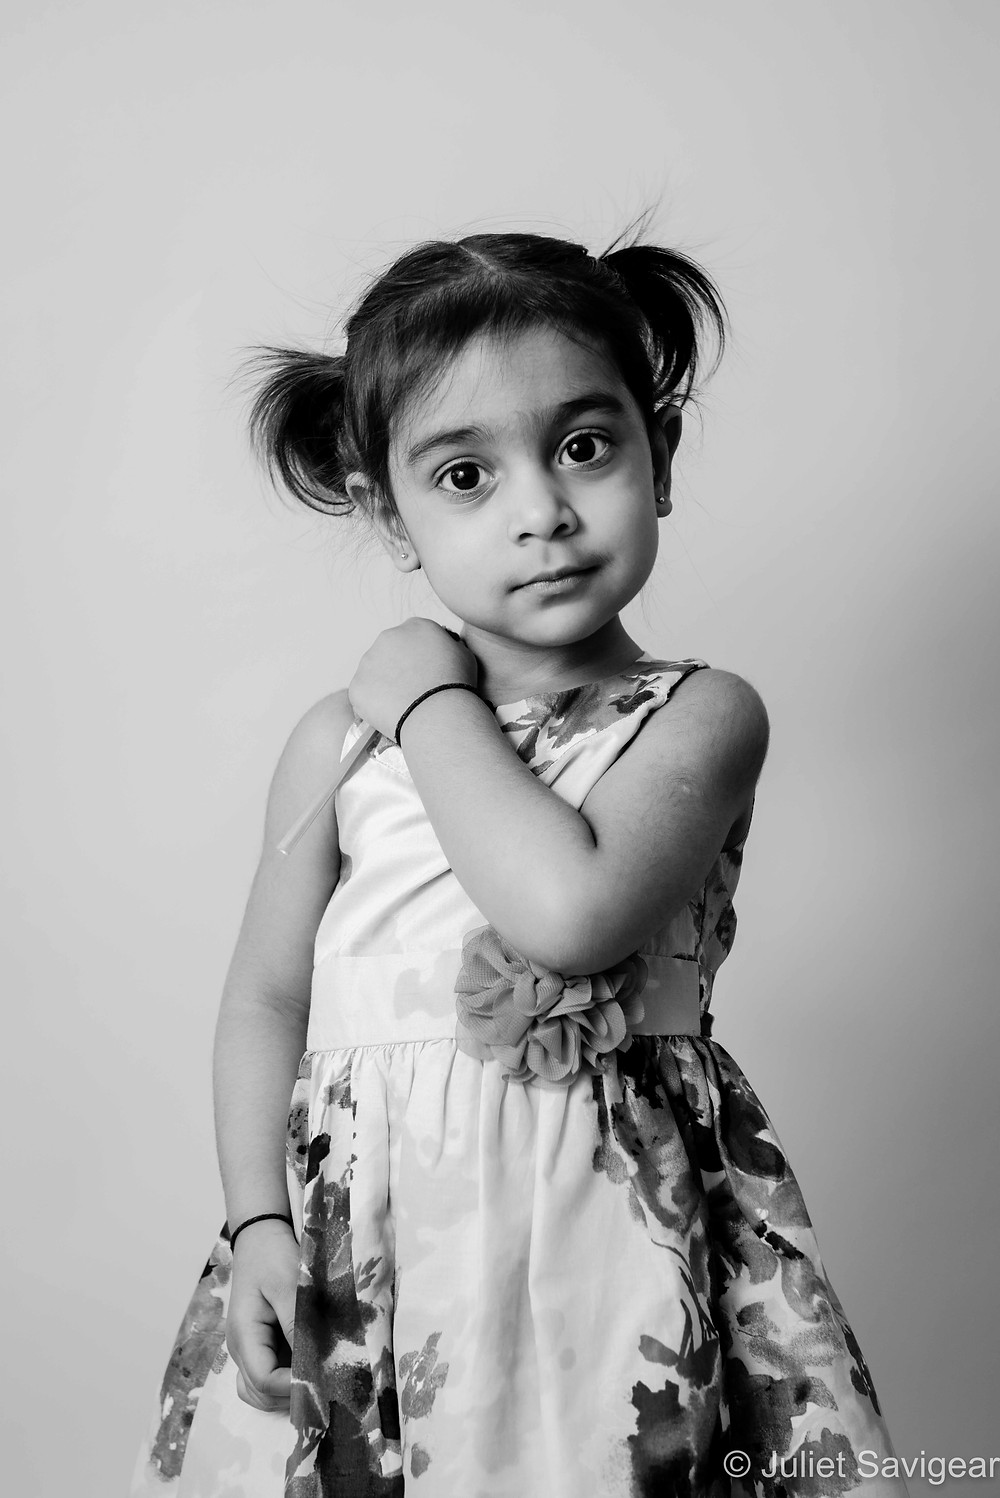 Children's photography